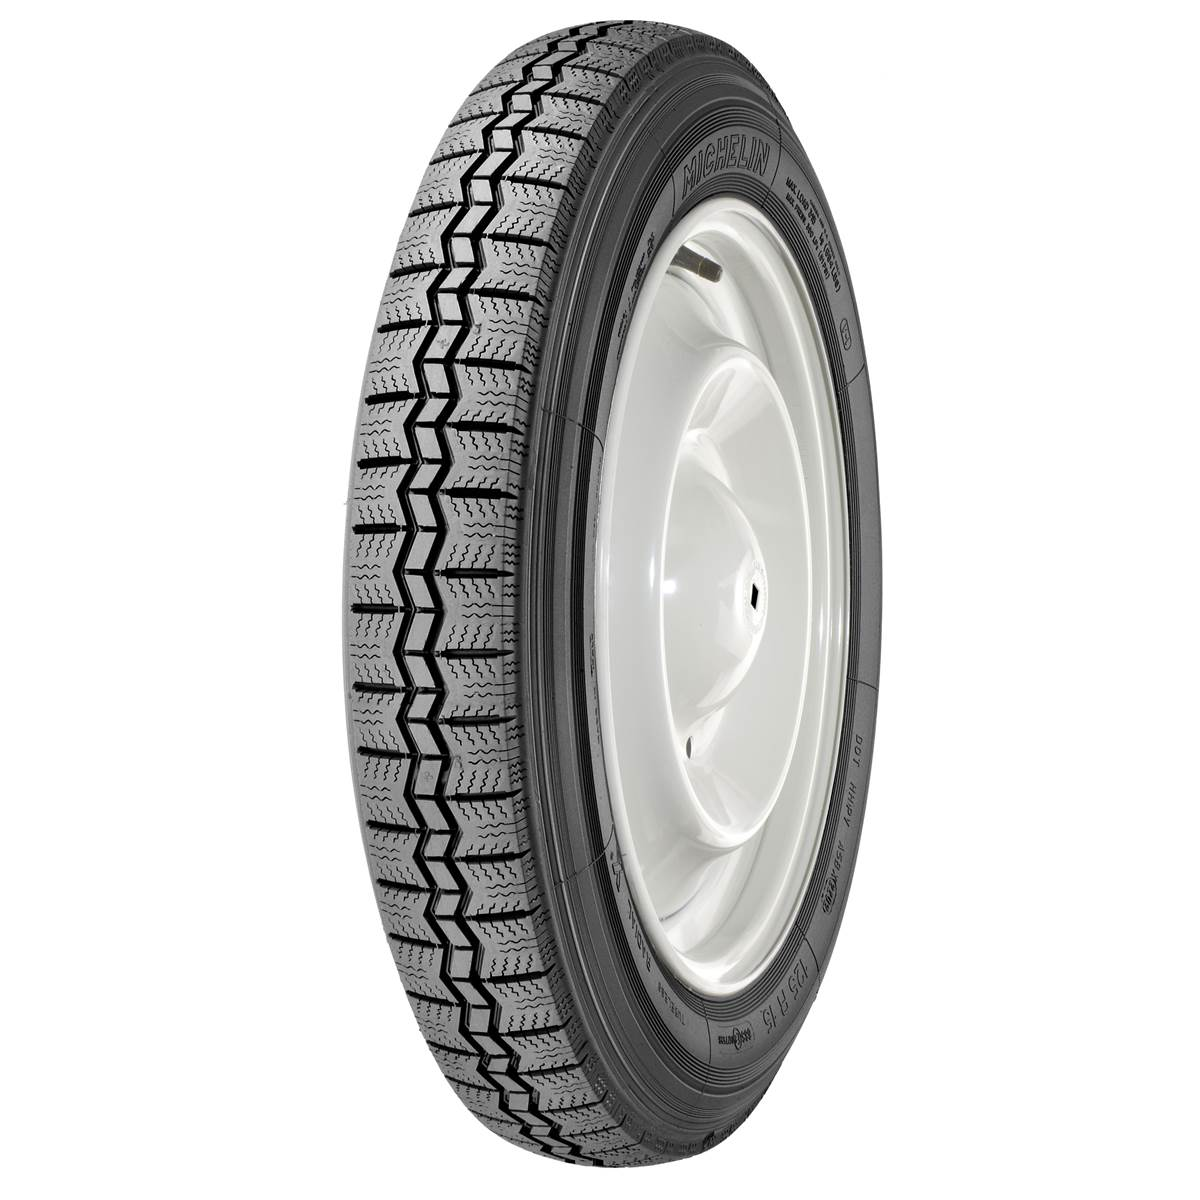 Pneu Michelin Collection 125/80R12 62S X